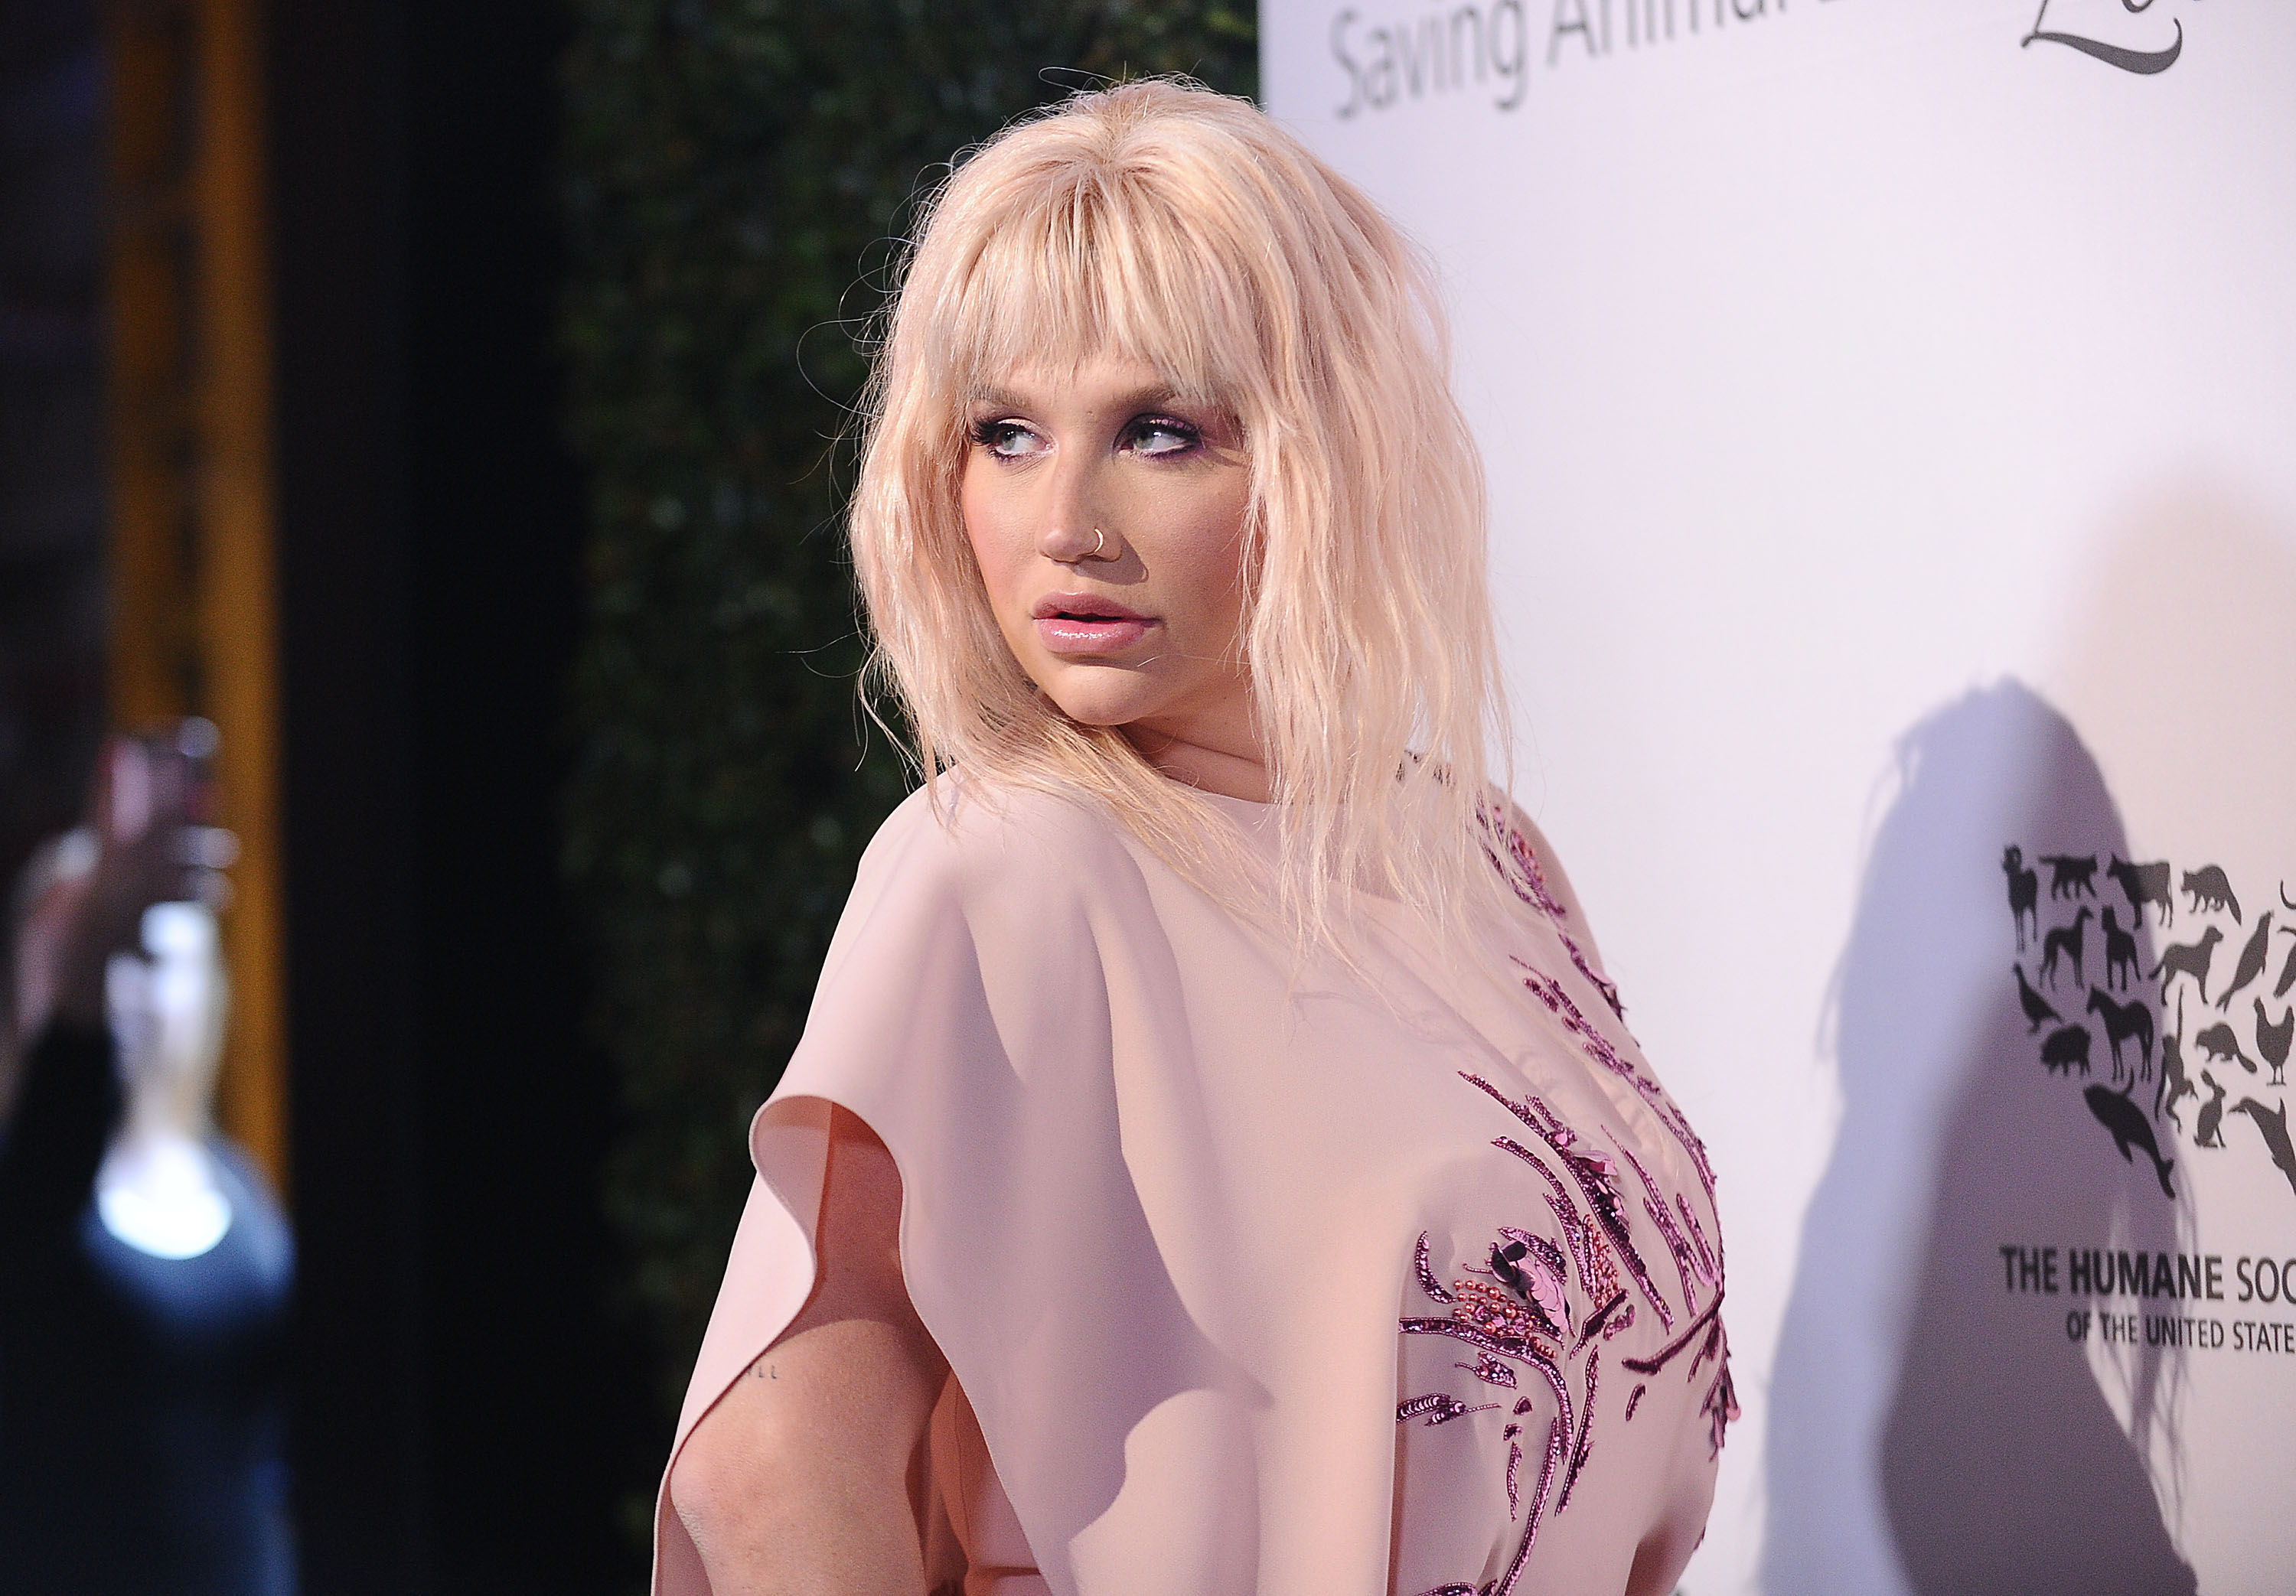 Kesha attends The Humane Society of The United States' To The Rescue gala at Paramount Studios on May 07, 2016 in Hollywood, California.